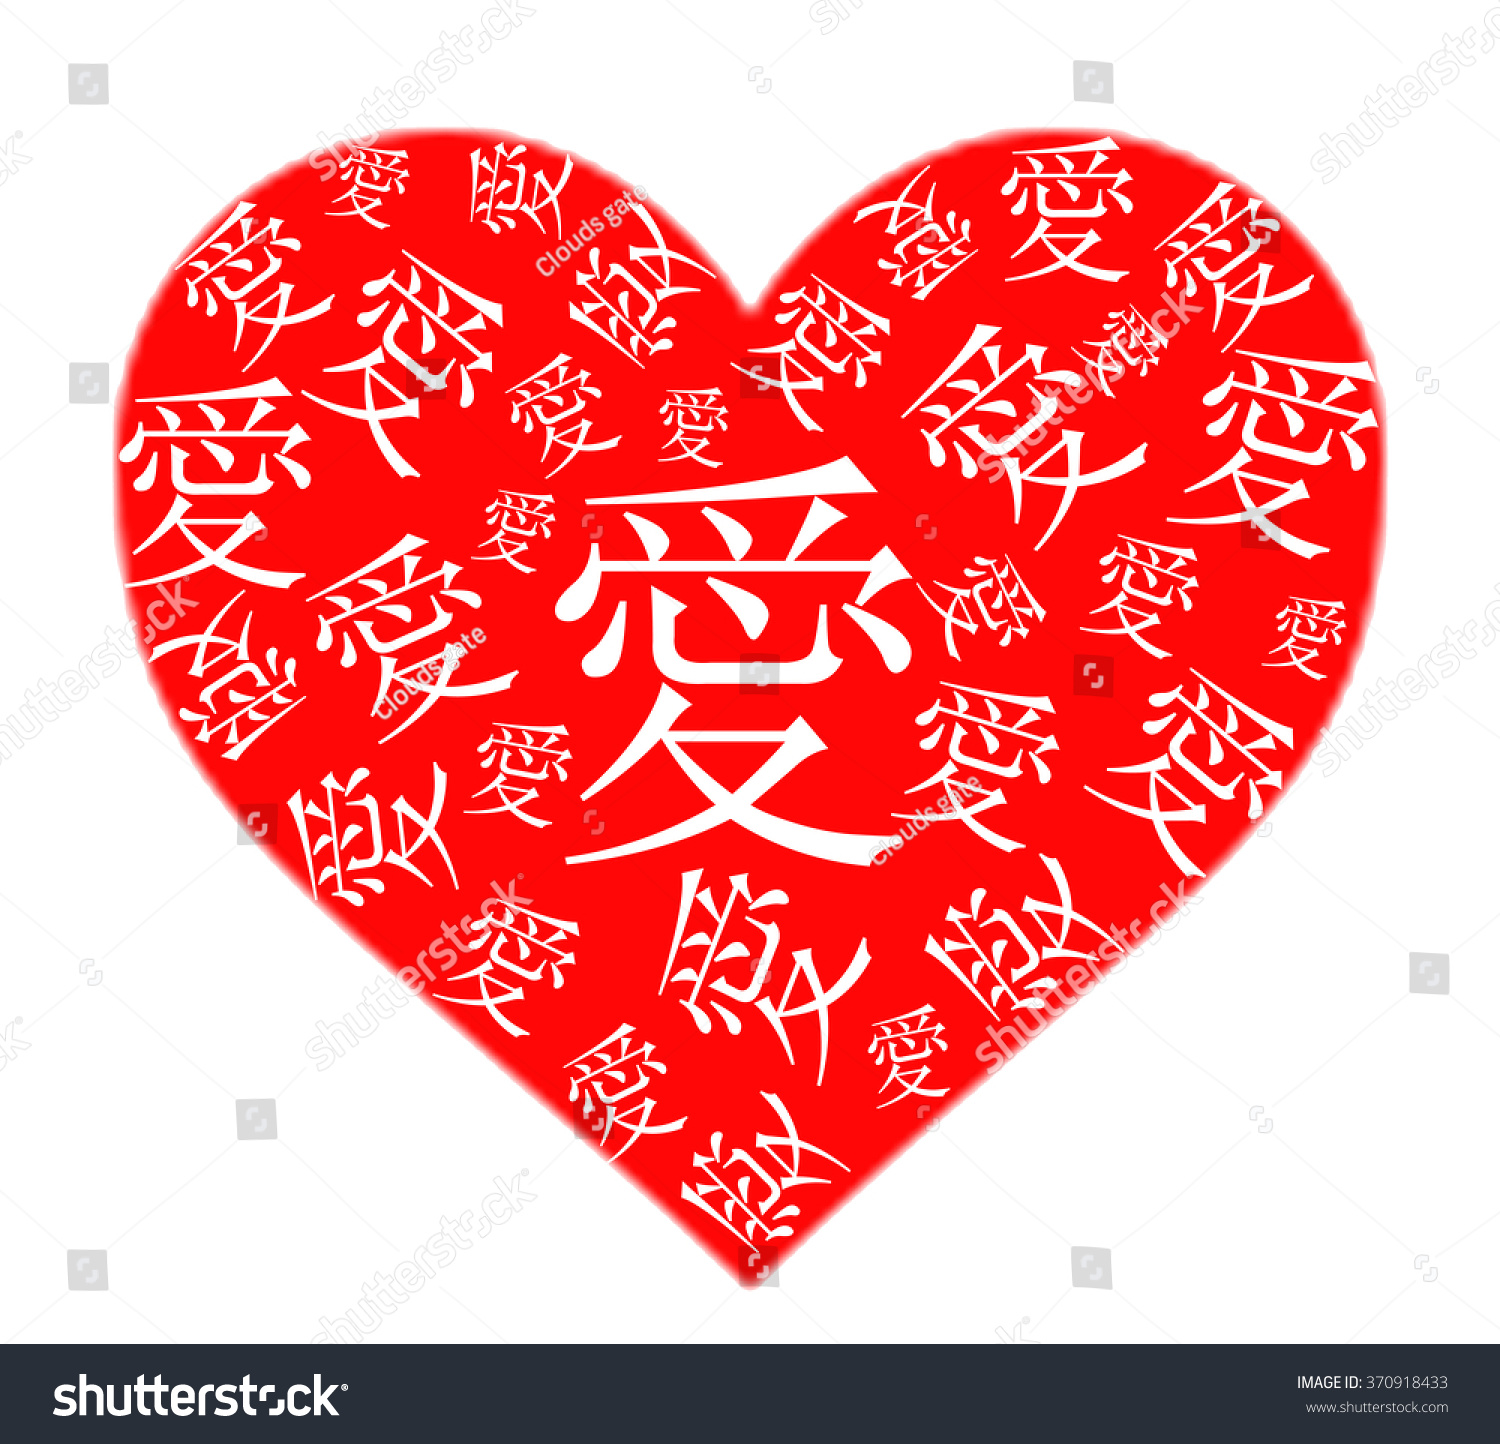 Heart Shape Chinese Character Ai Which Stock Illustration 370918433 ...